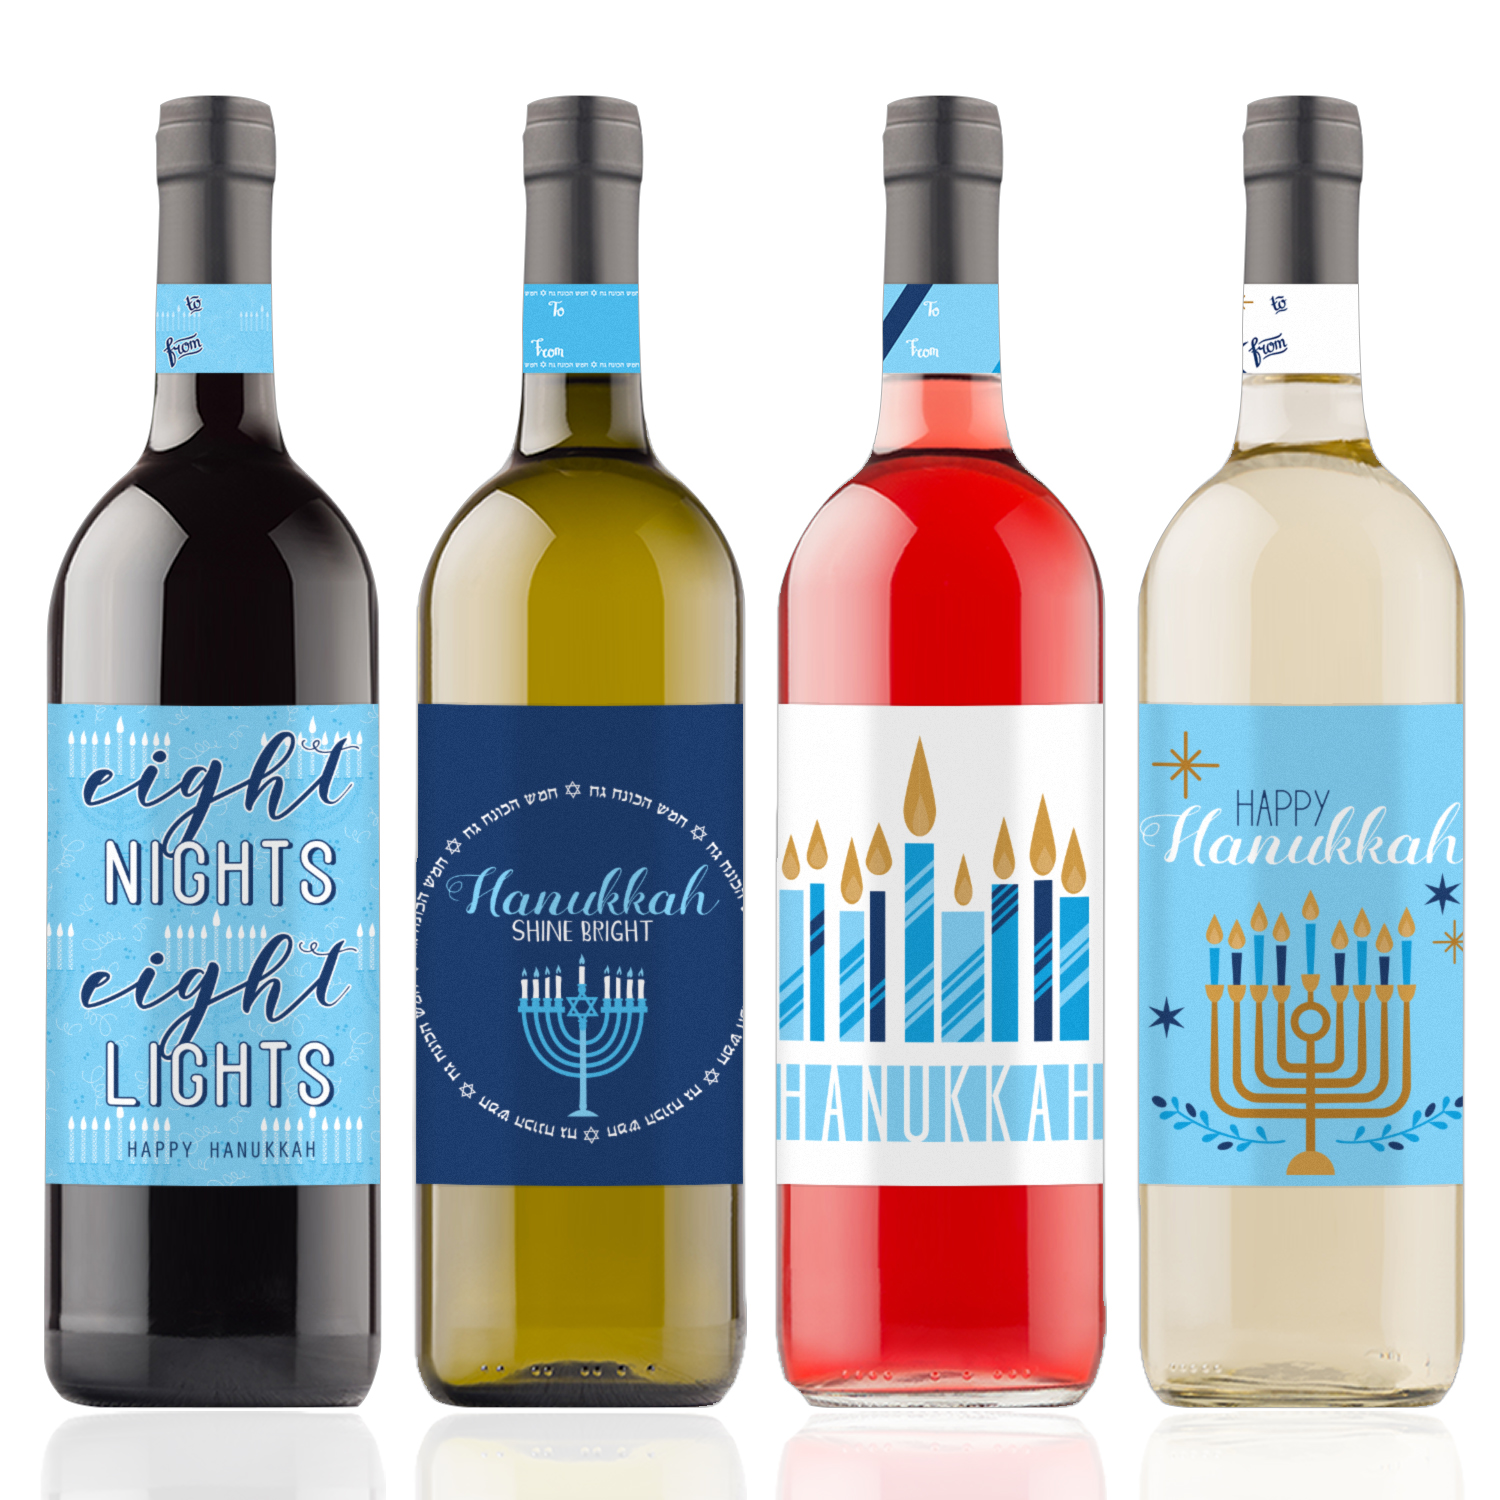 Hanukkah Wine Bottle Stickers, 4 count - Blue Hanukkah Decorations - Chanukah - 4 Wine Labels with Gift Tags